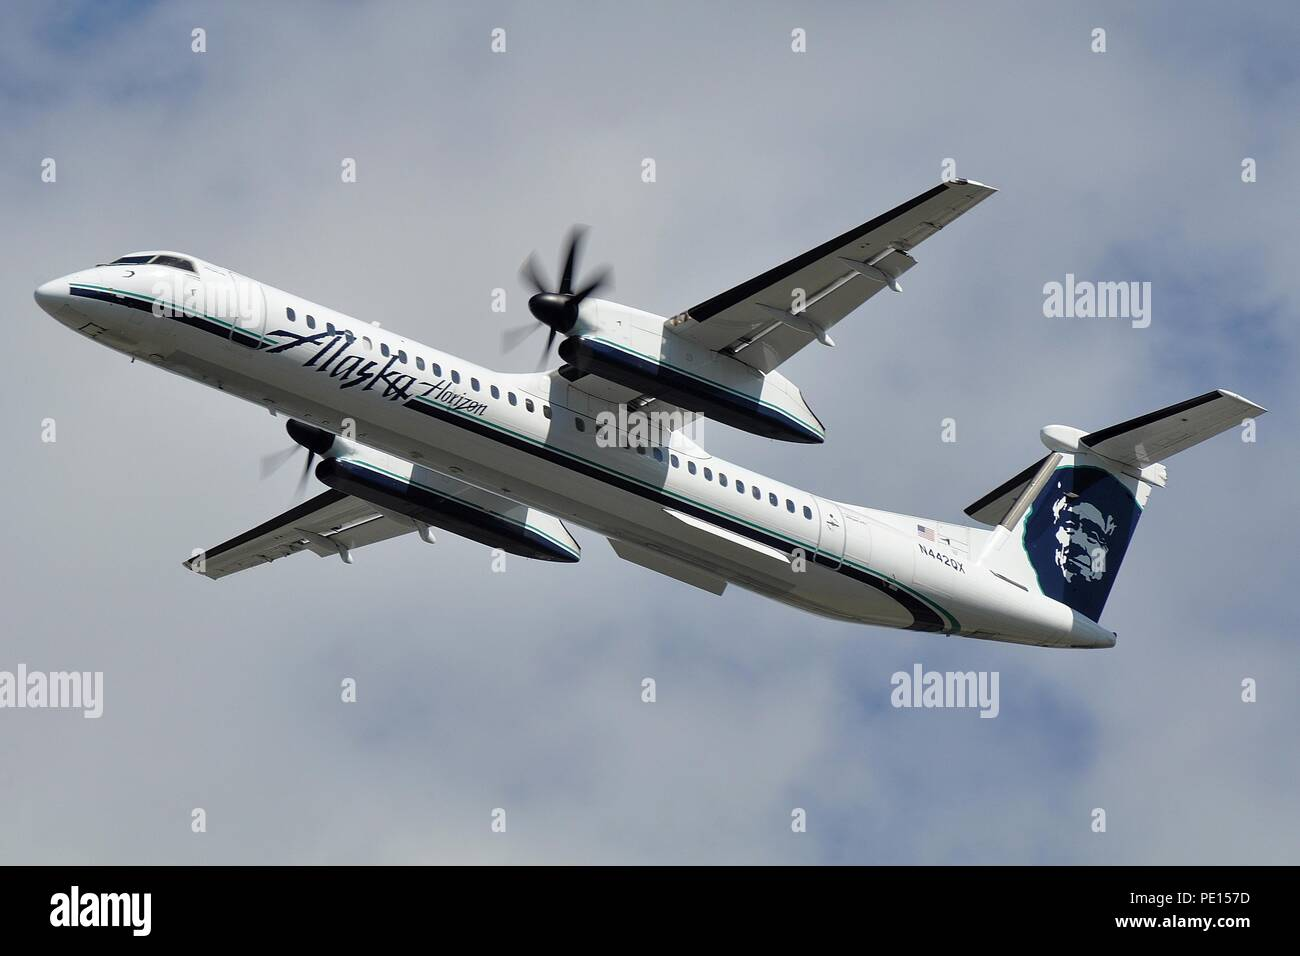 HORIZON AIR / ALASKA AIRLINES BOMBARDIER DHC-8-Q400 REGIONAL AIRLINER - Stock Image